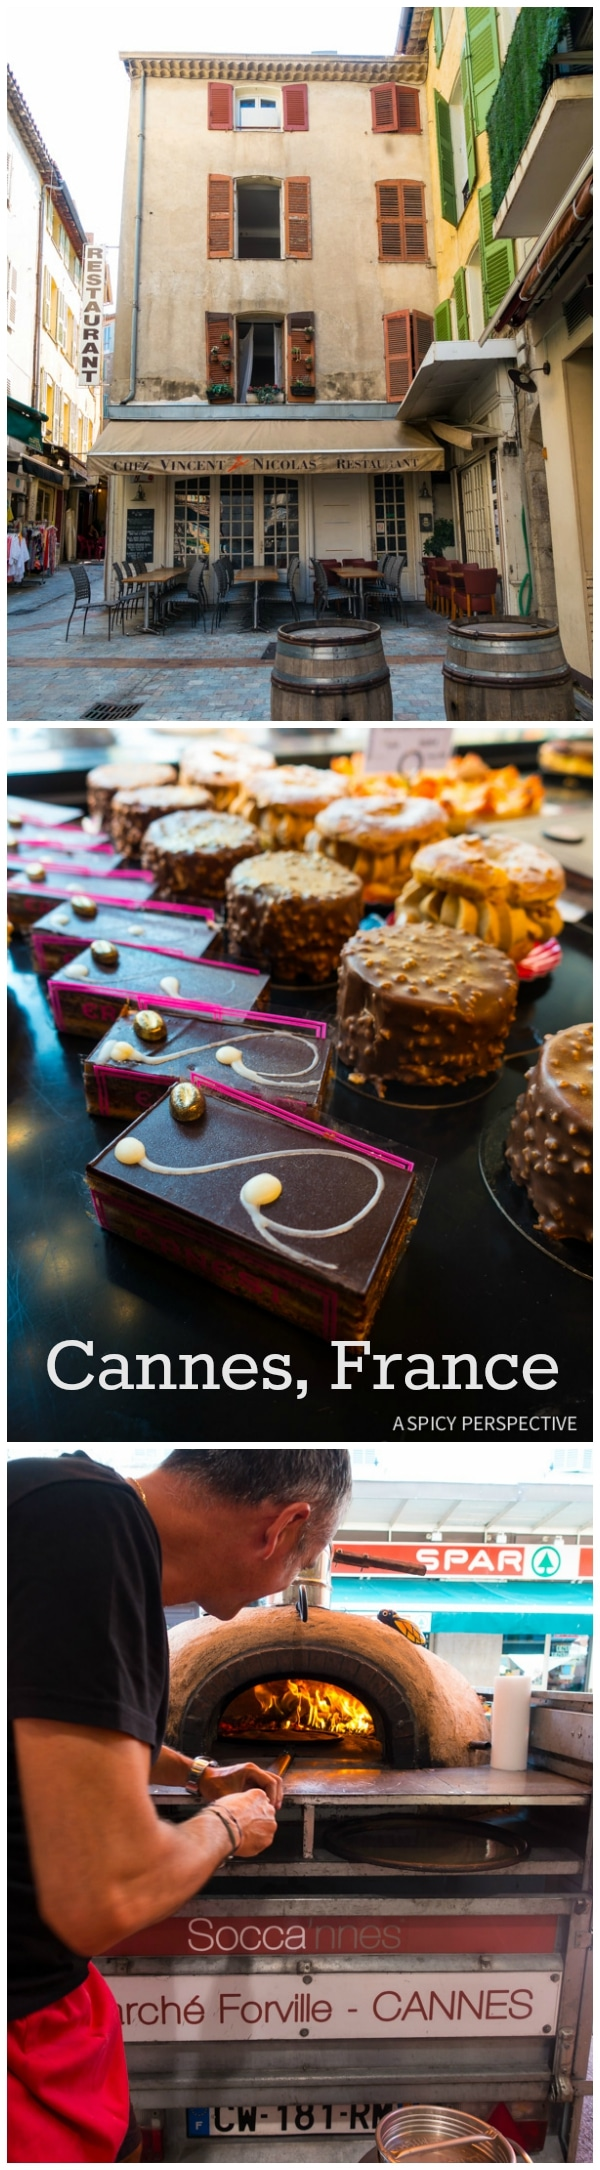 Exploring Cannes, France on ASpicyPerspective.com - #Travel Tips and Photography in #France